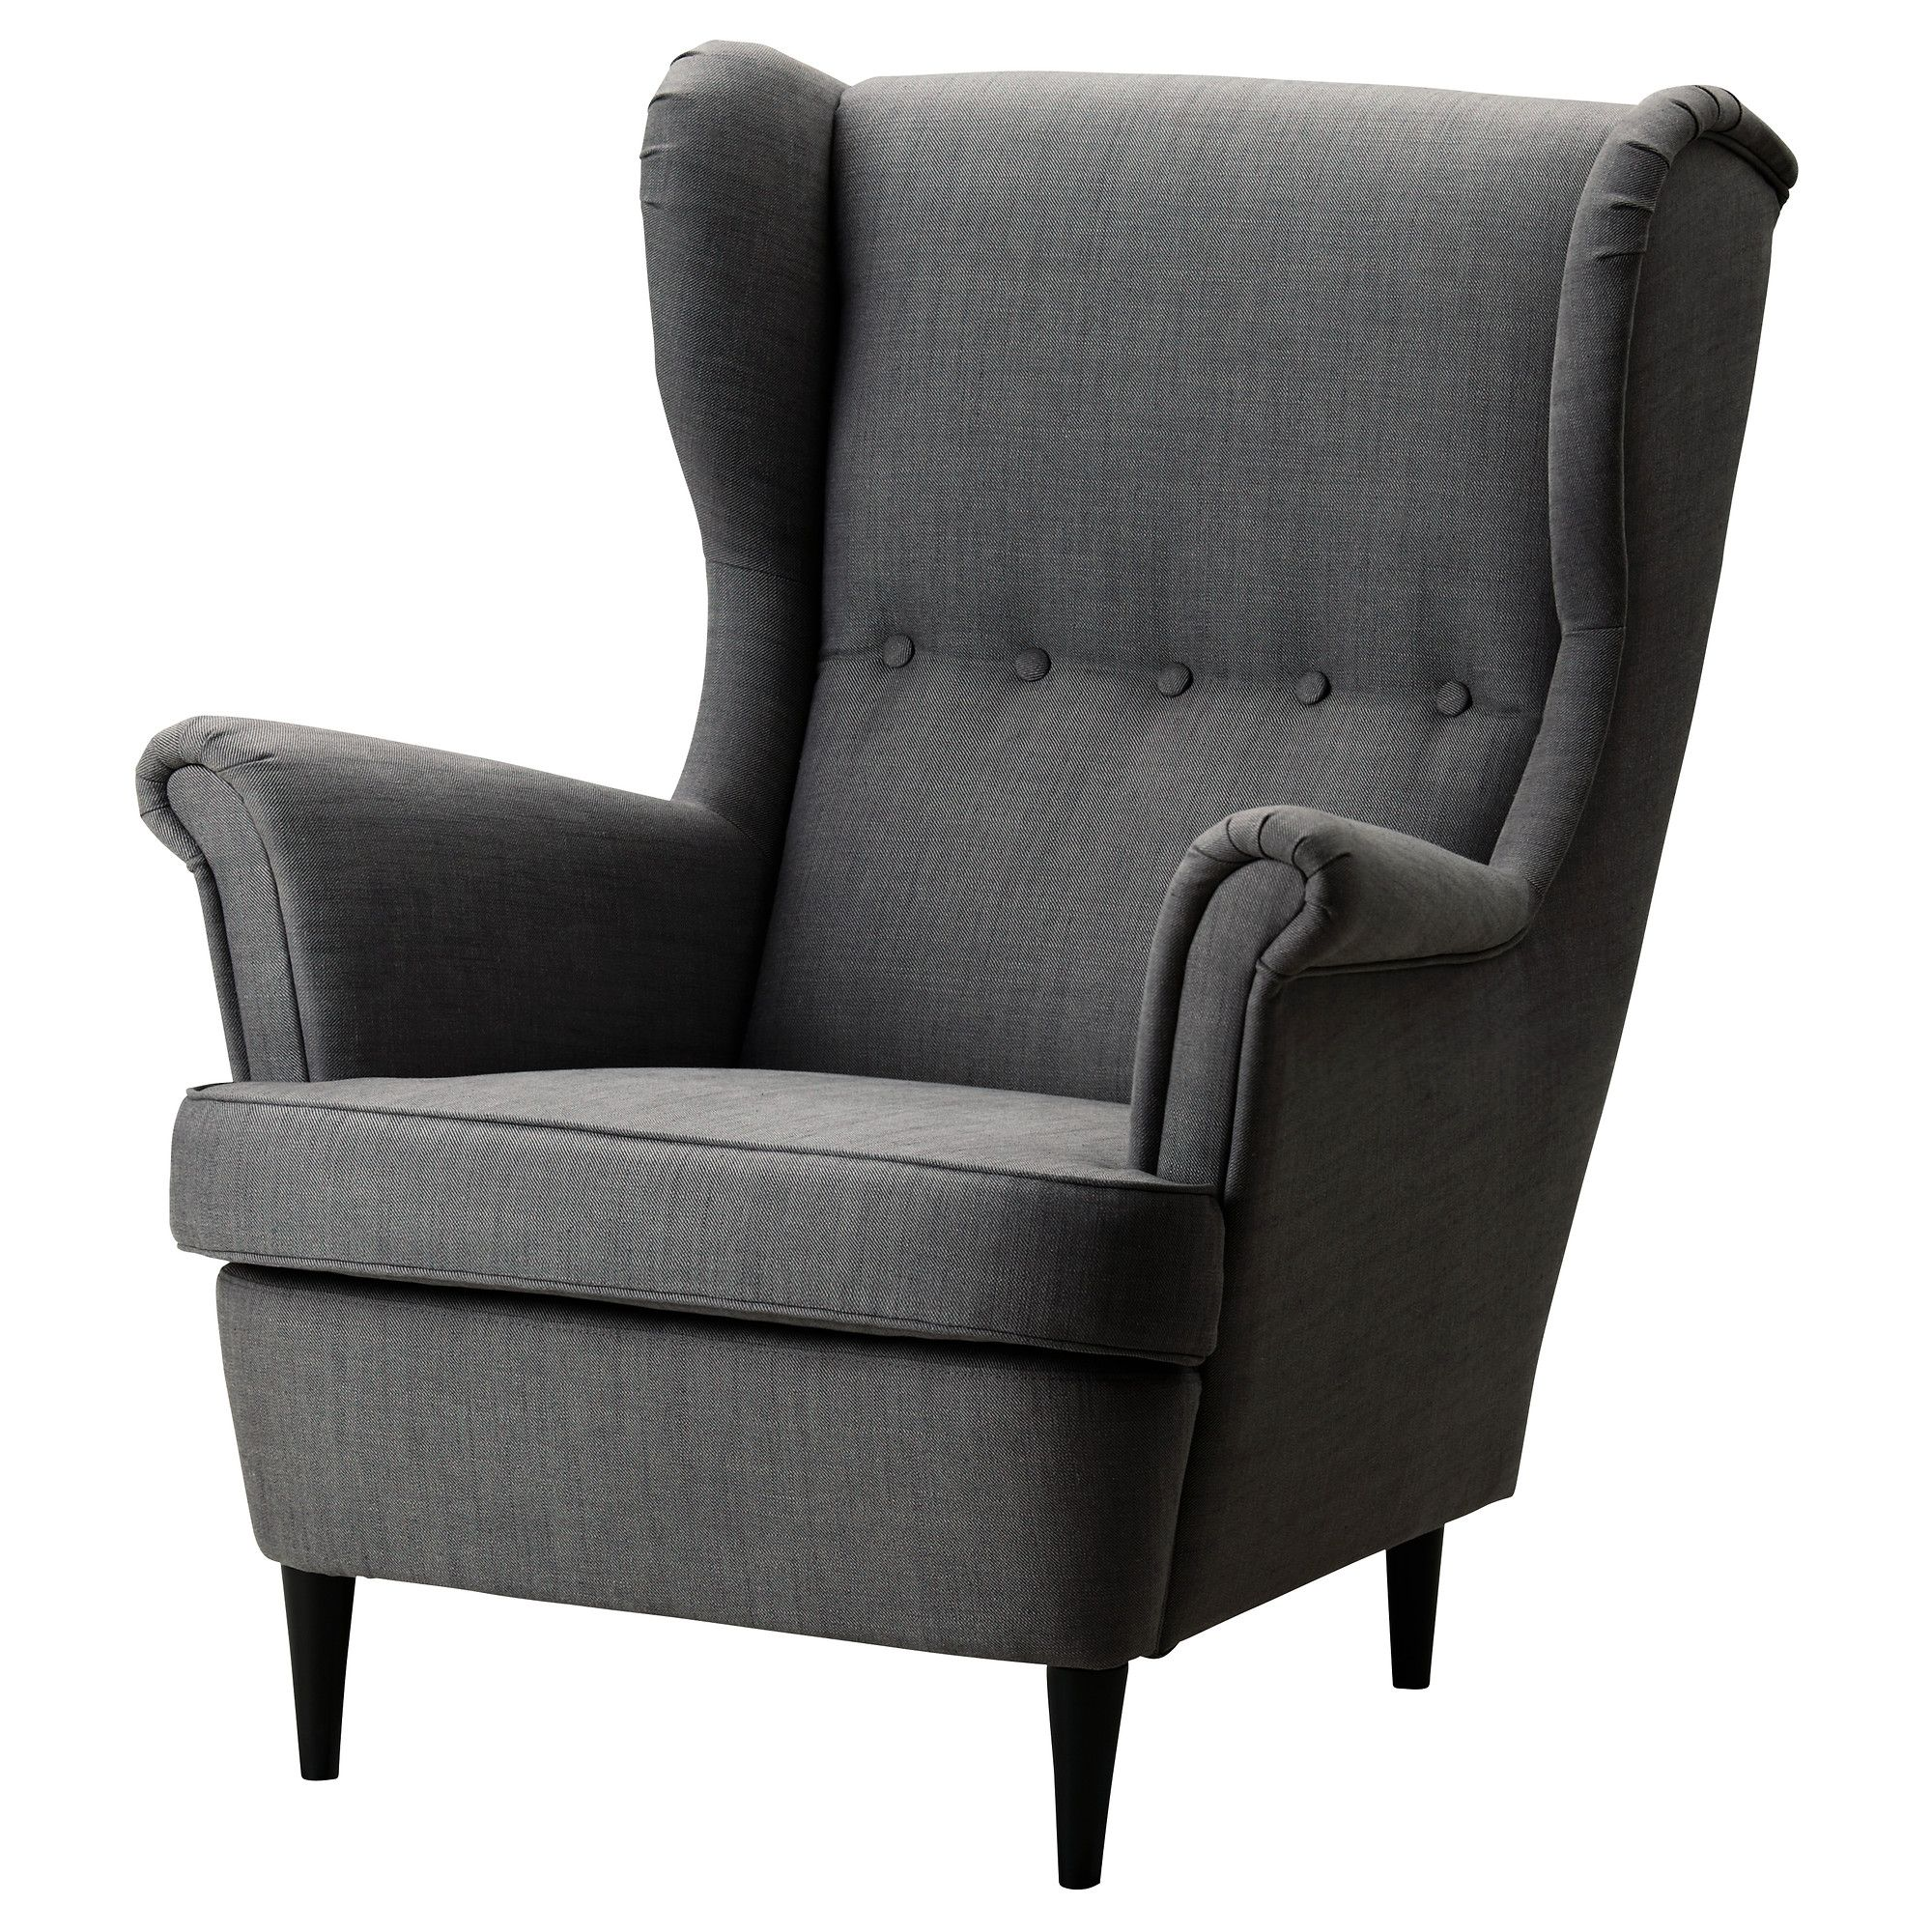 strandmon wing chair svanby gray ikea ikea shopping. Black Bedroom Furniture Sets. Home Design Ideas